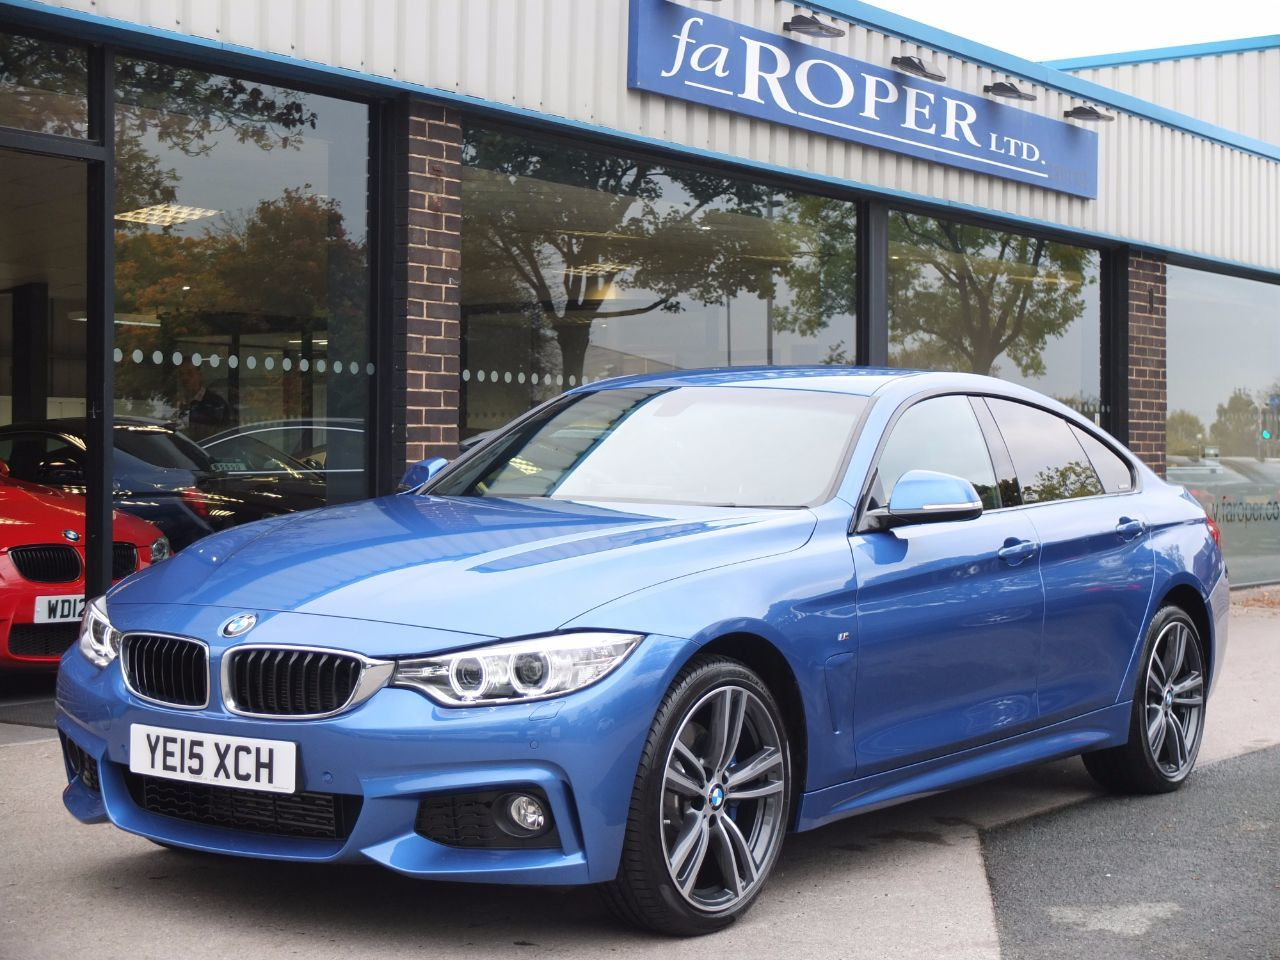 BMW 4 Series 2.0 420d xDrive M Sport Gran Coupe Auto (M Sport Plus Pack) Coupe Diesel Estoril Blue MetallicBMW 4 Series 2.0 420d xDrive M Sport Gran Coupe Auto (M Sport Plus Pack) Coupe Diesel Estoril Blue Metallic at fa Roper Ltd Bradford